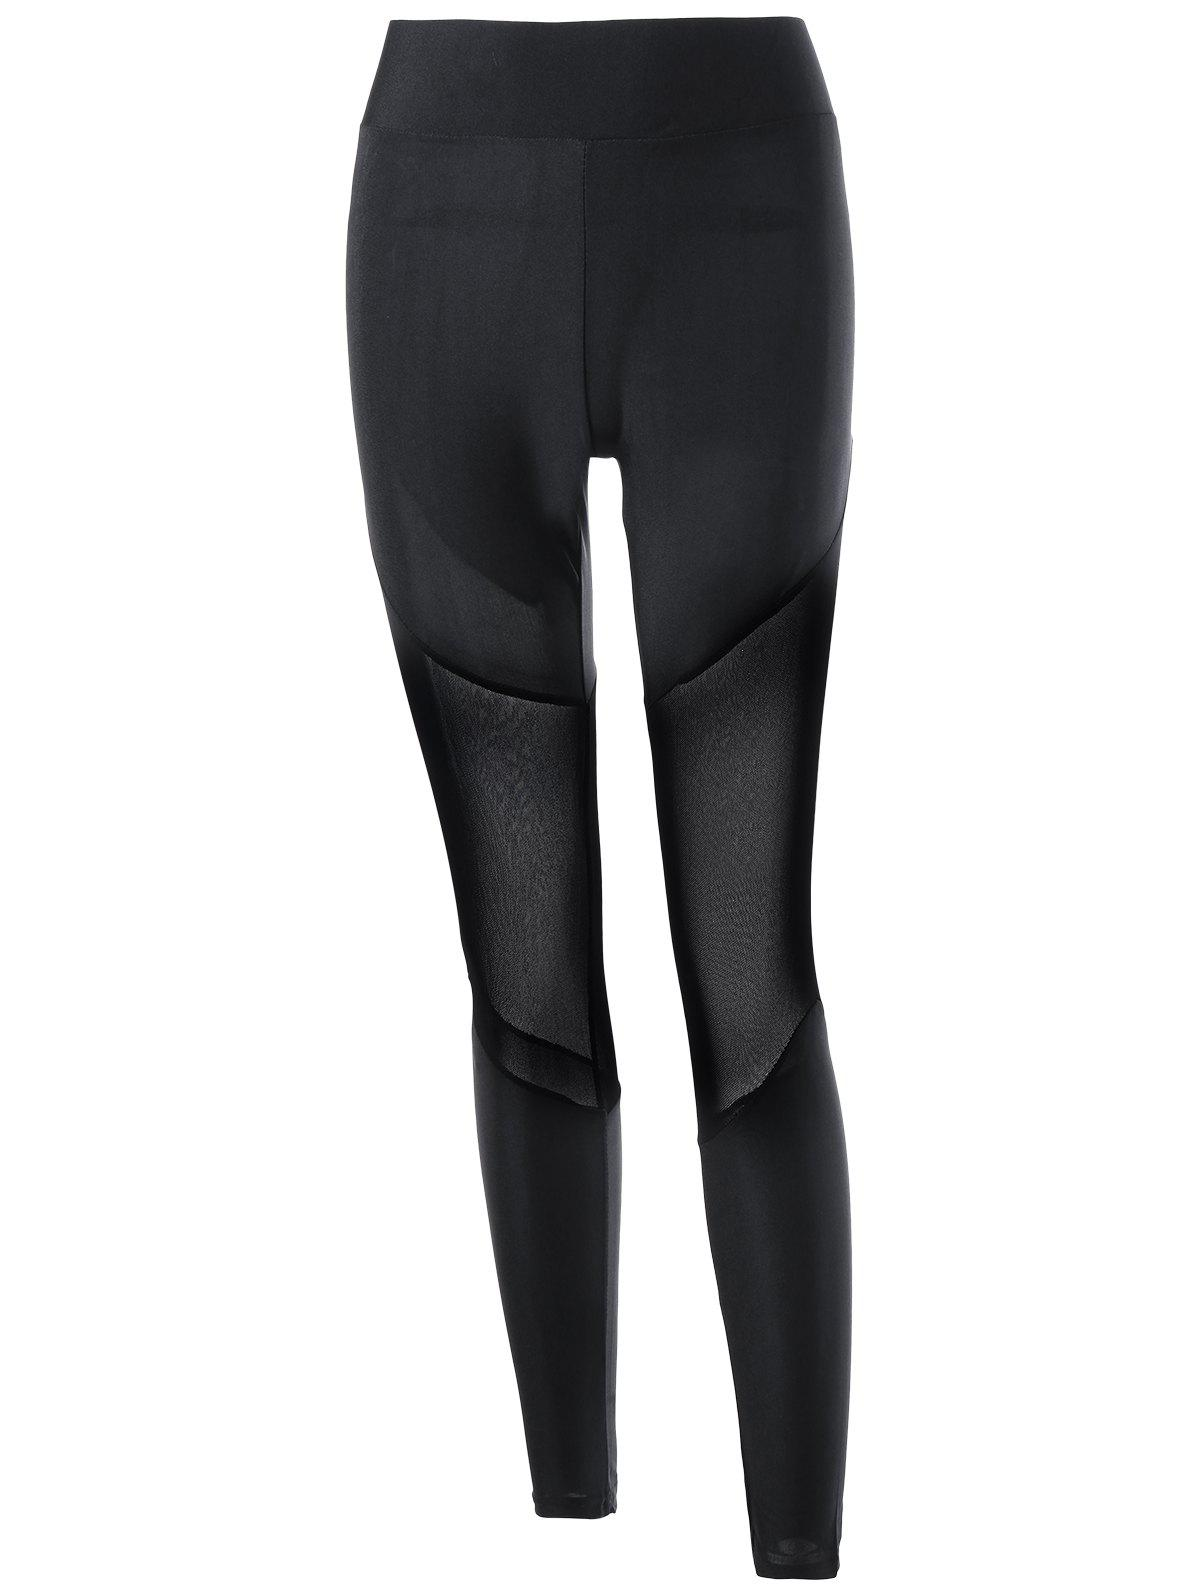 Mesh Insert Tight Leggings - BLACK 2XL